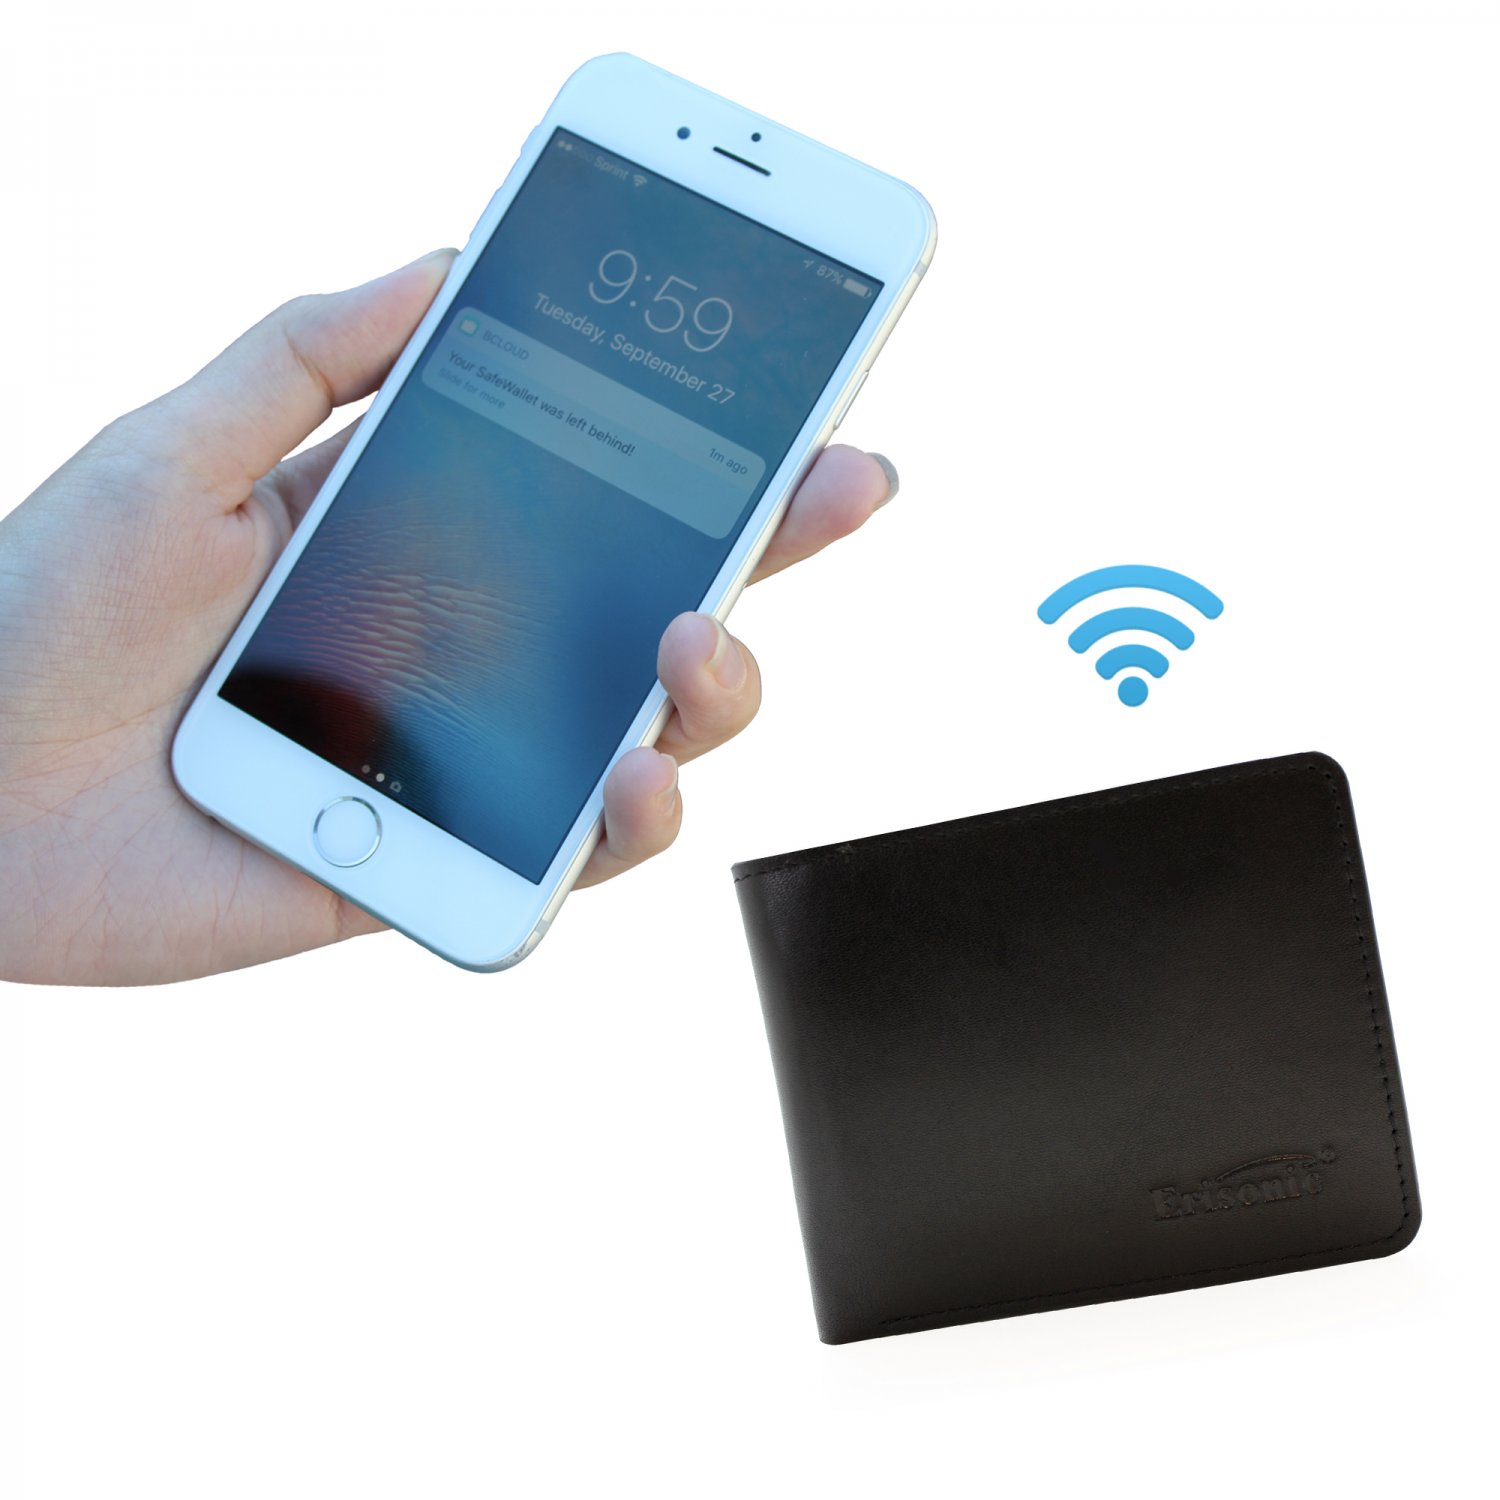 Best Leather Smart Wallet Bluetooth Wallet with Iphone/Android app anti-lost Fashion wallet